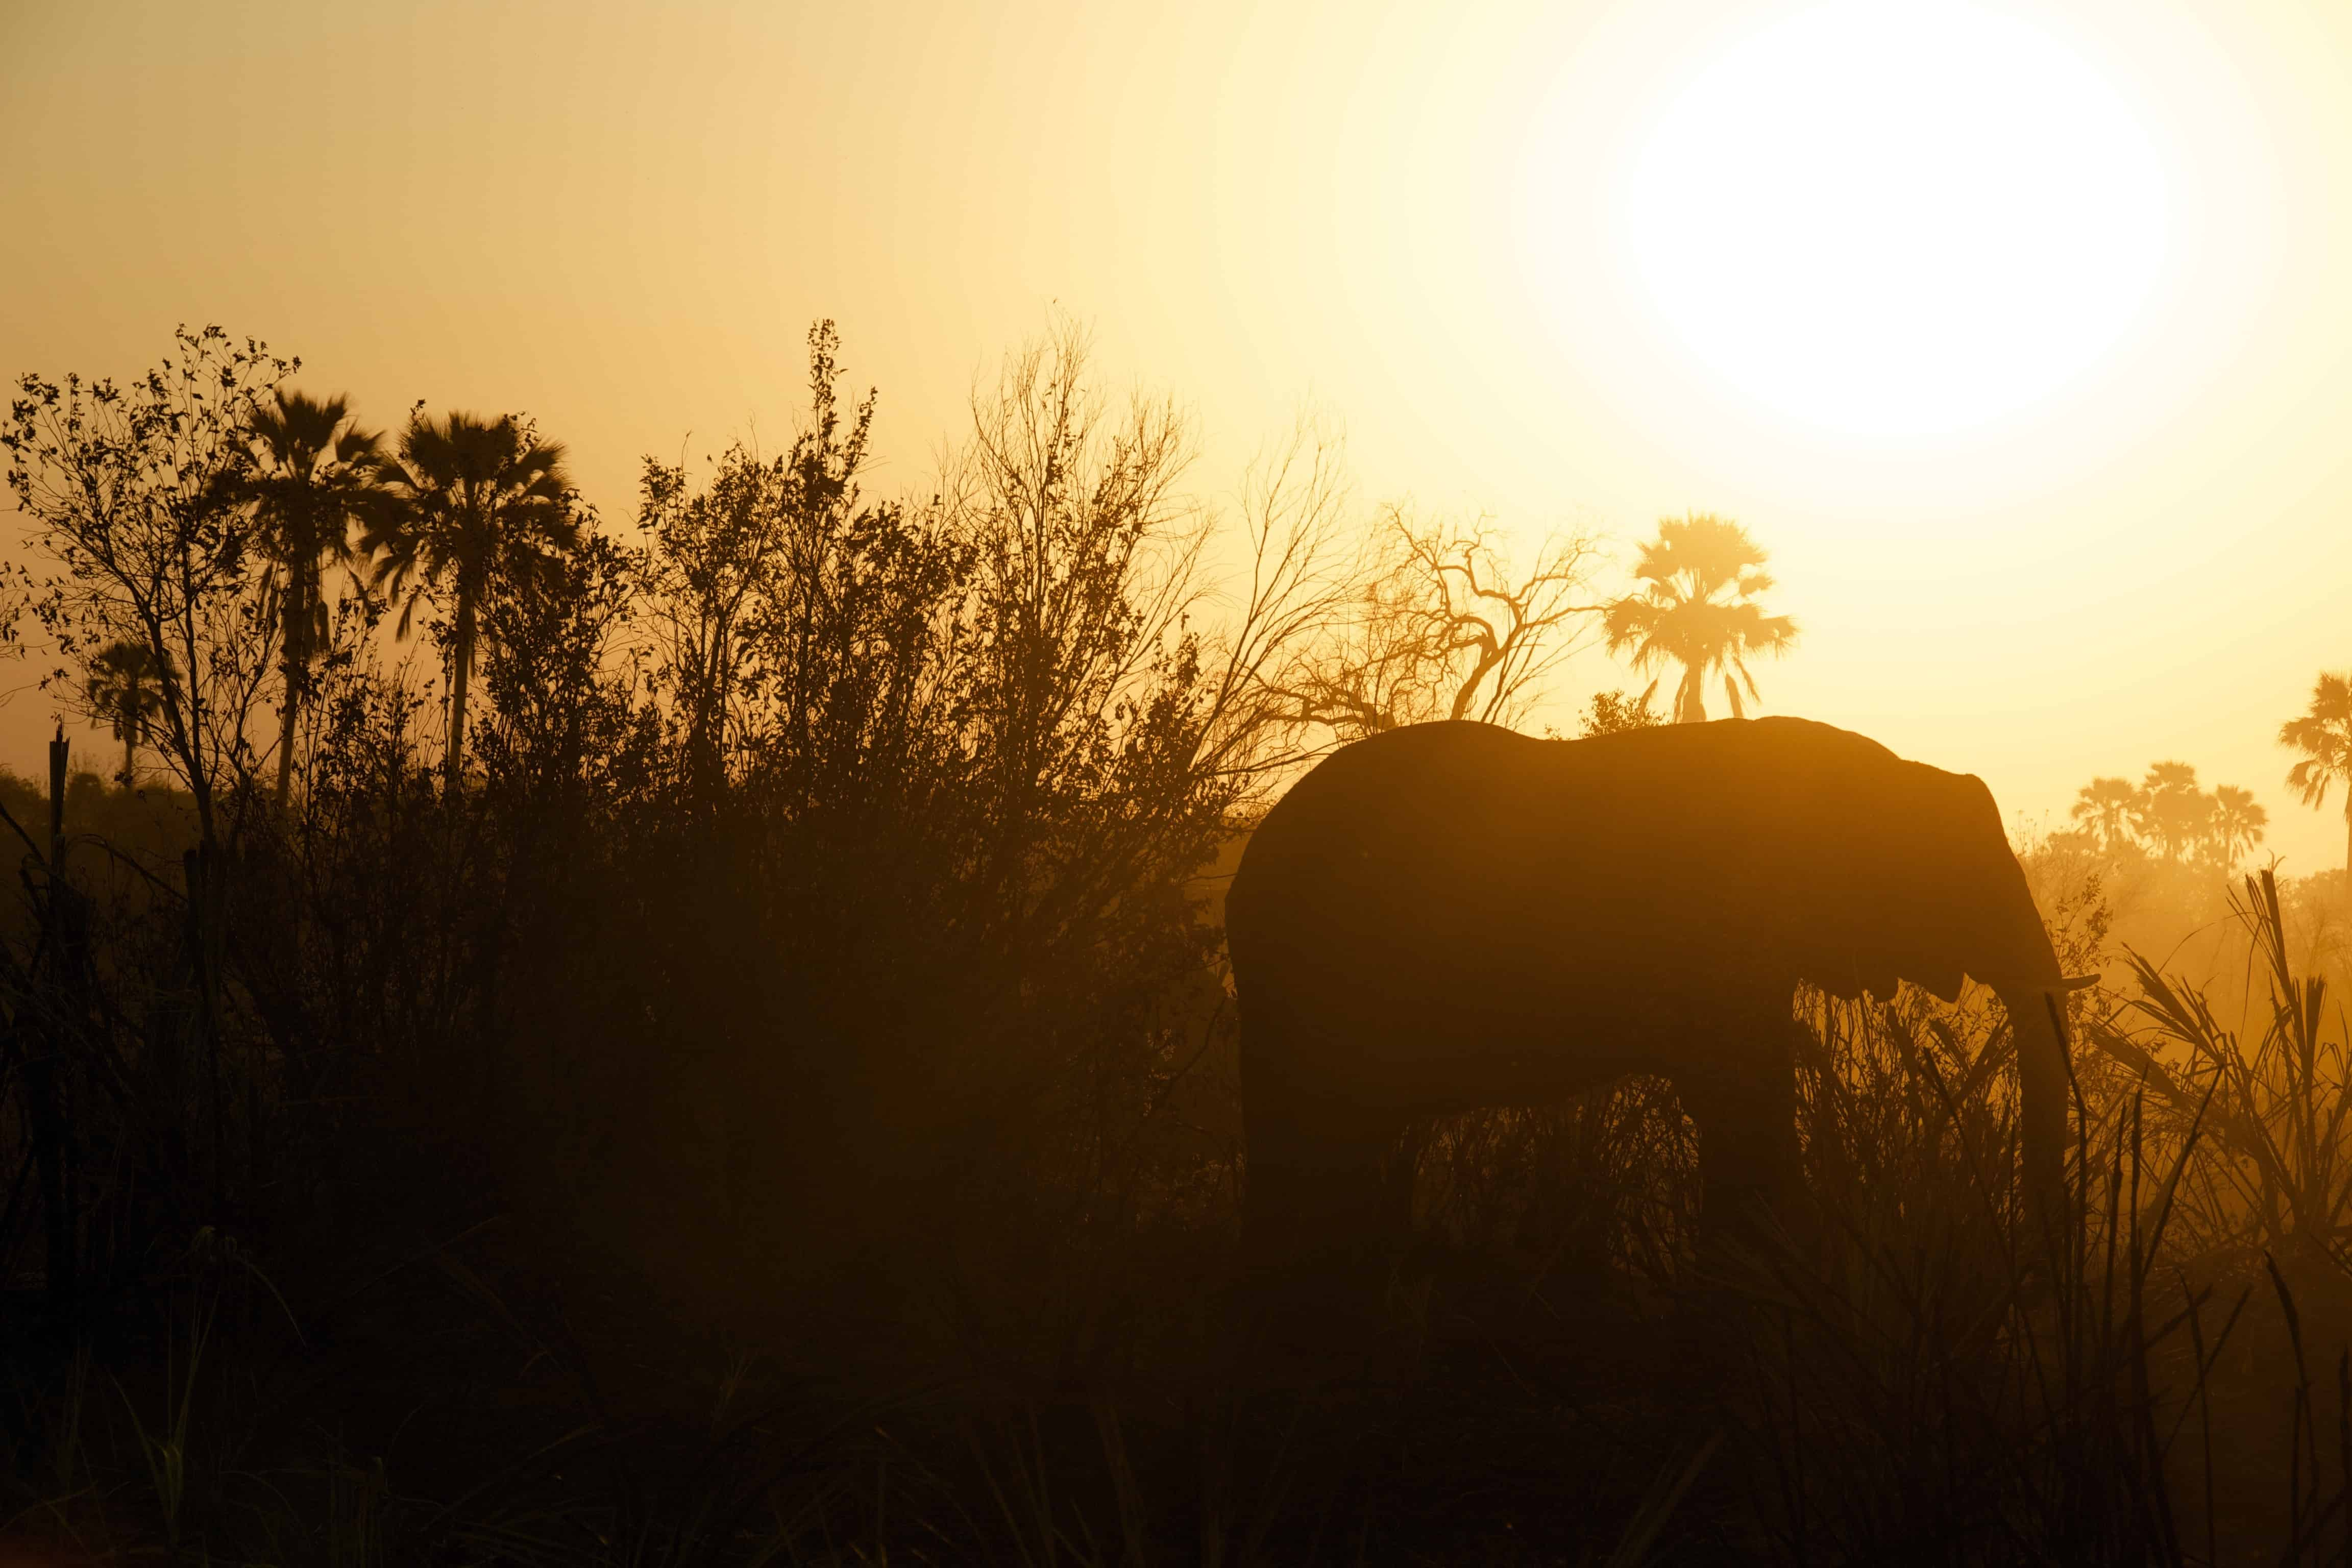 silhoutte of an elephant at sunset